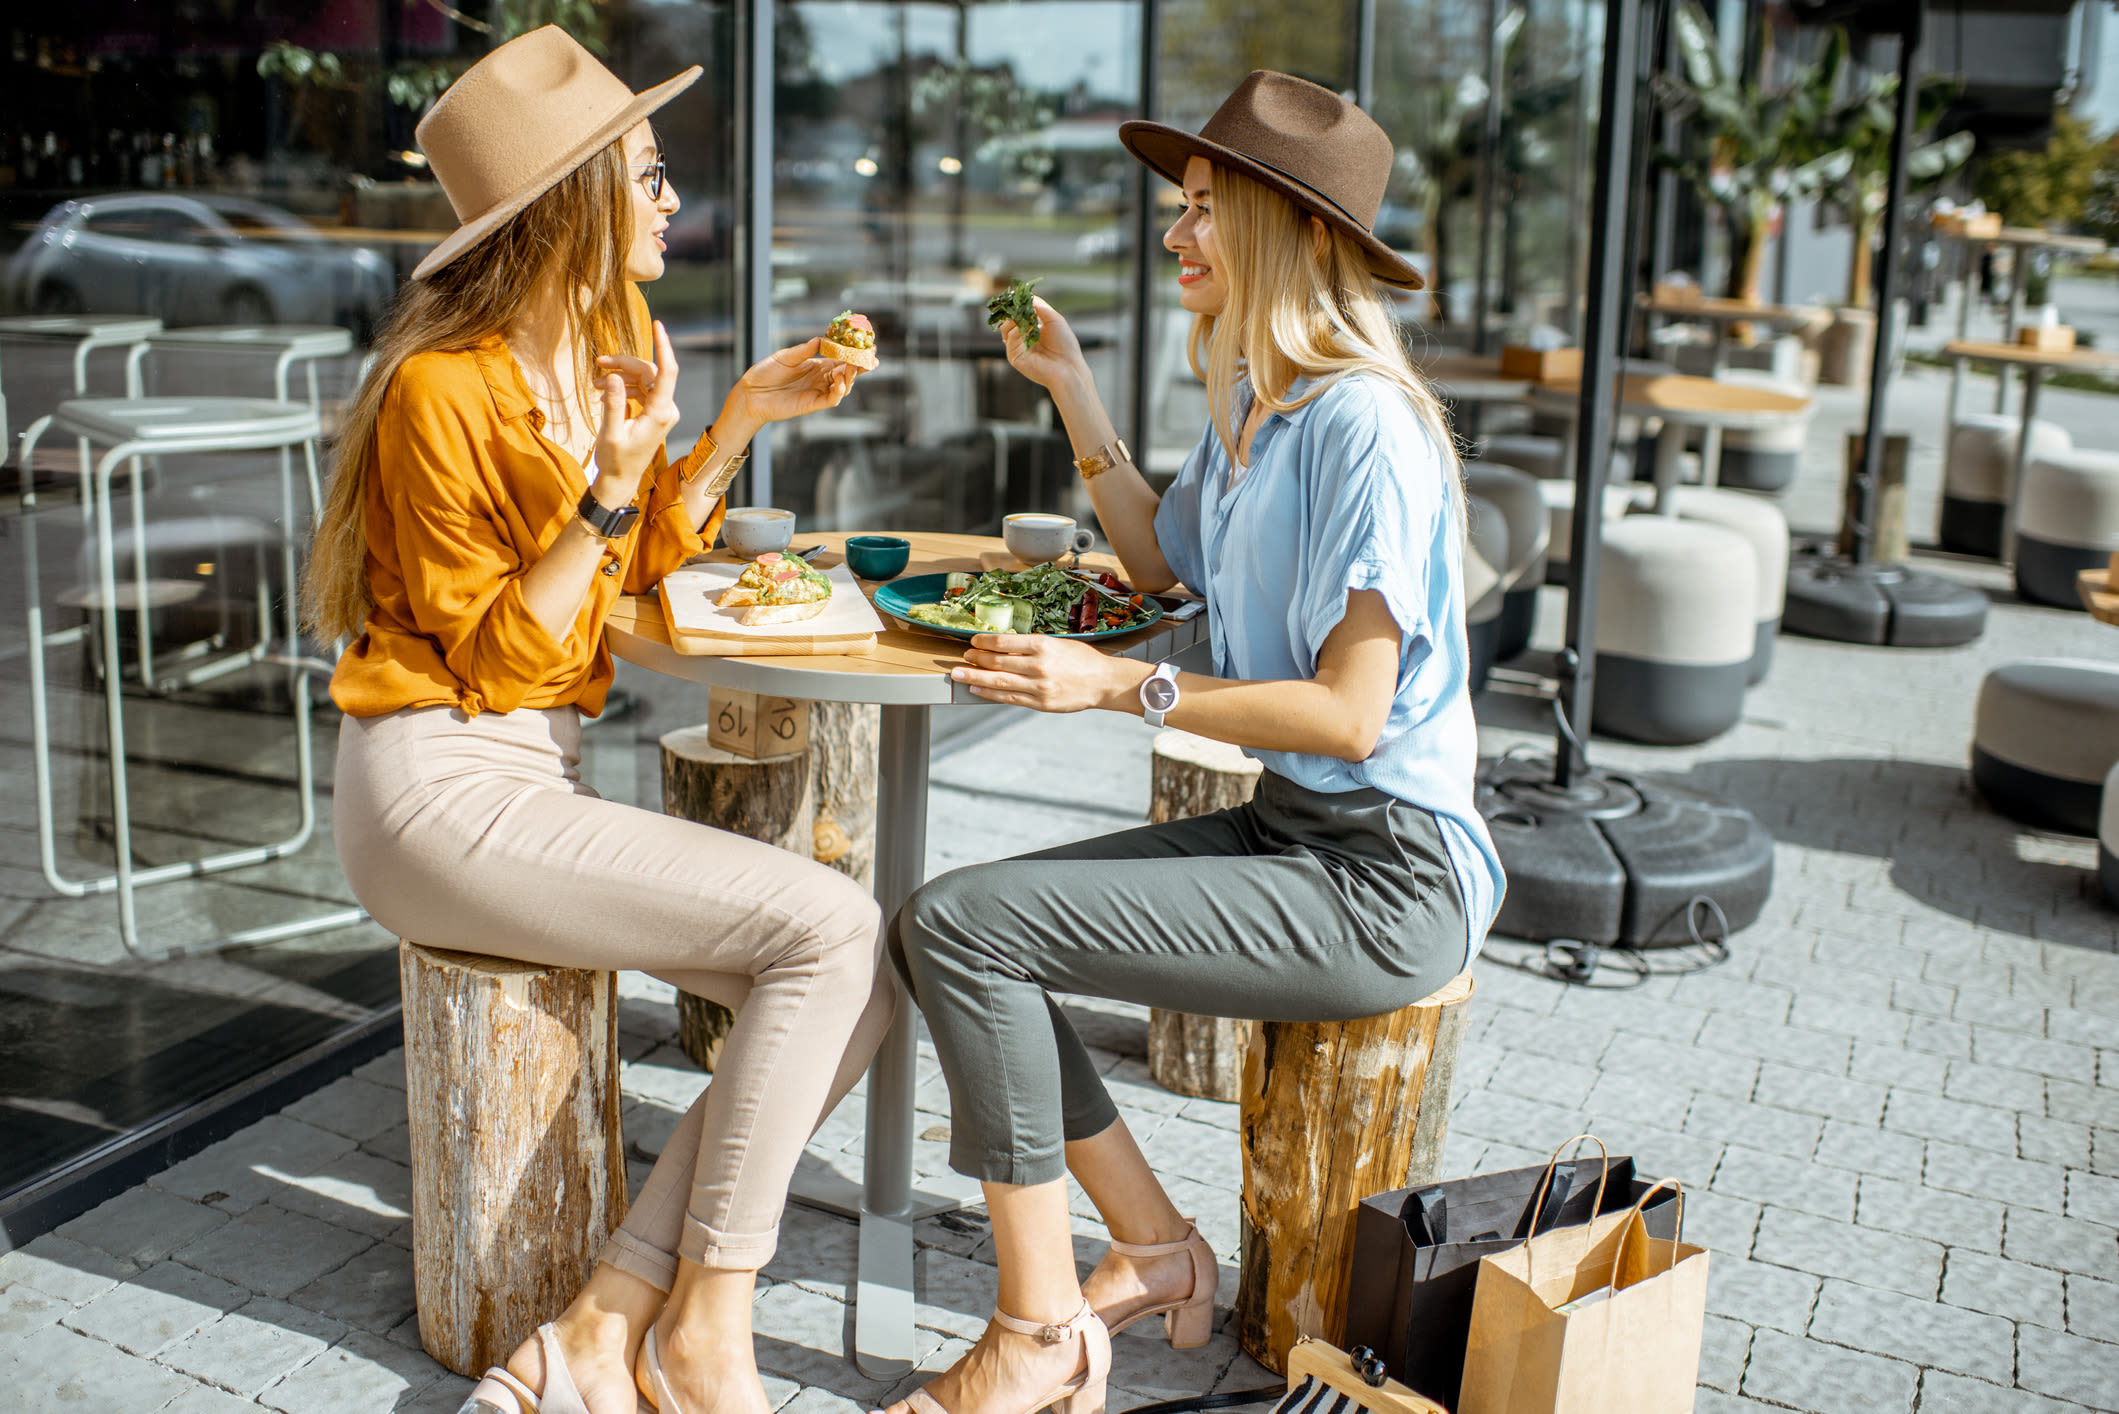 Residents eating outdoors near Morehead West in Charlotte, North Carolina